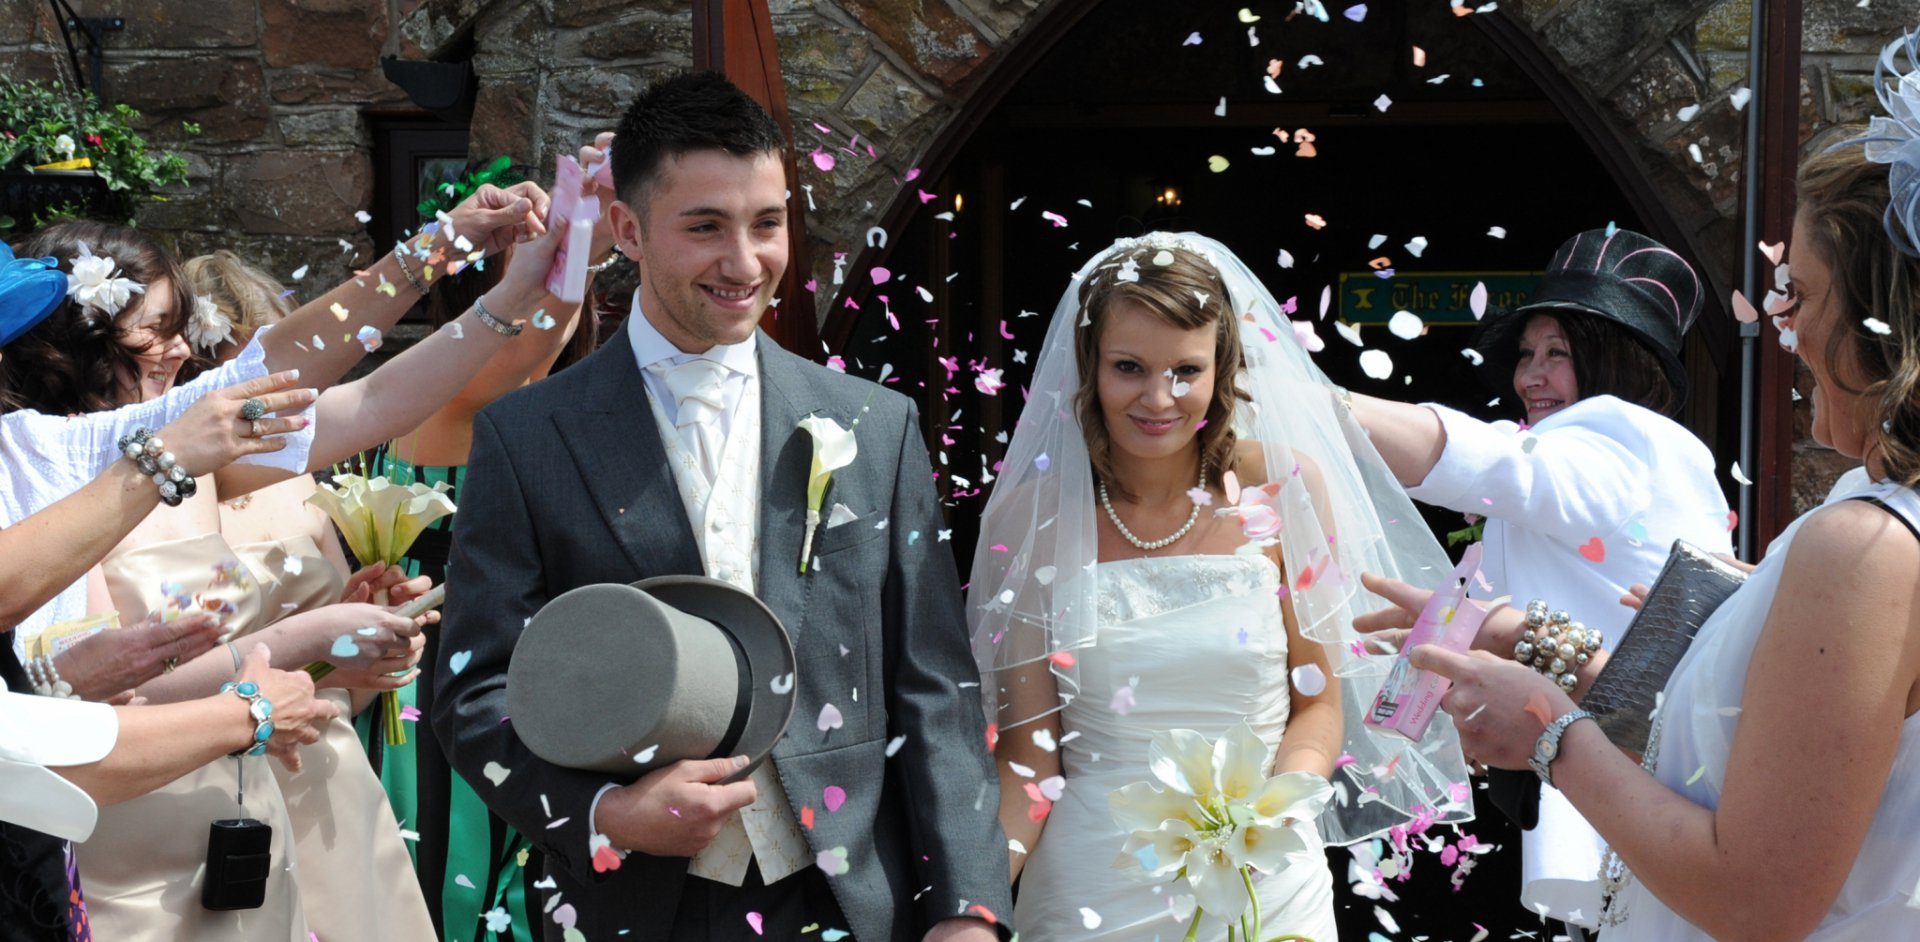 Gretna Green Wedding Venues - The Mill Forge Hotel